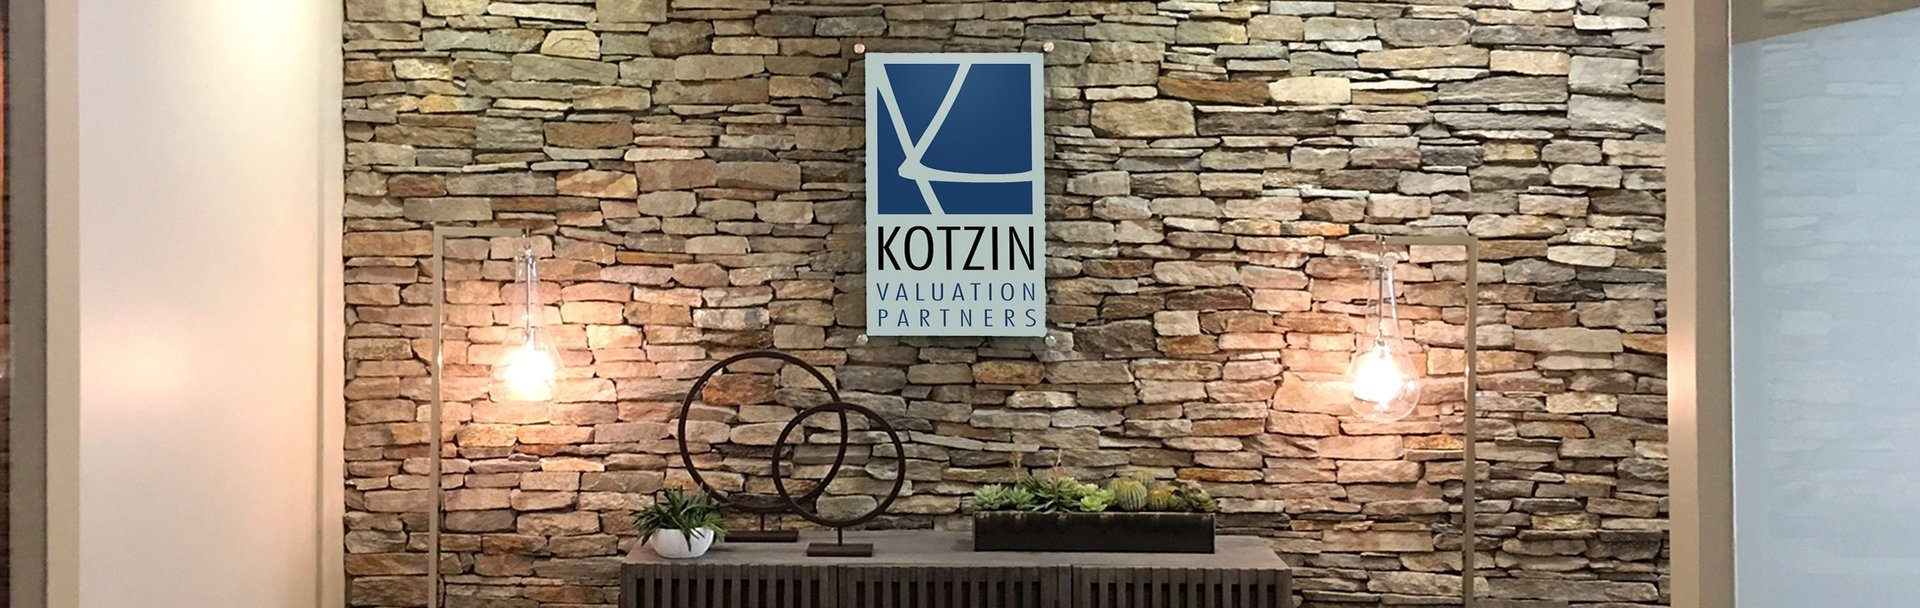 Kotzin Valuation Partners lobby